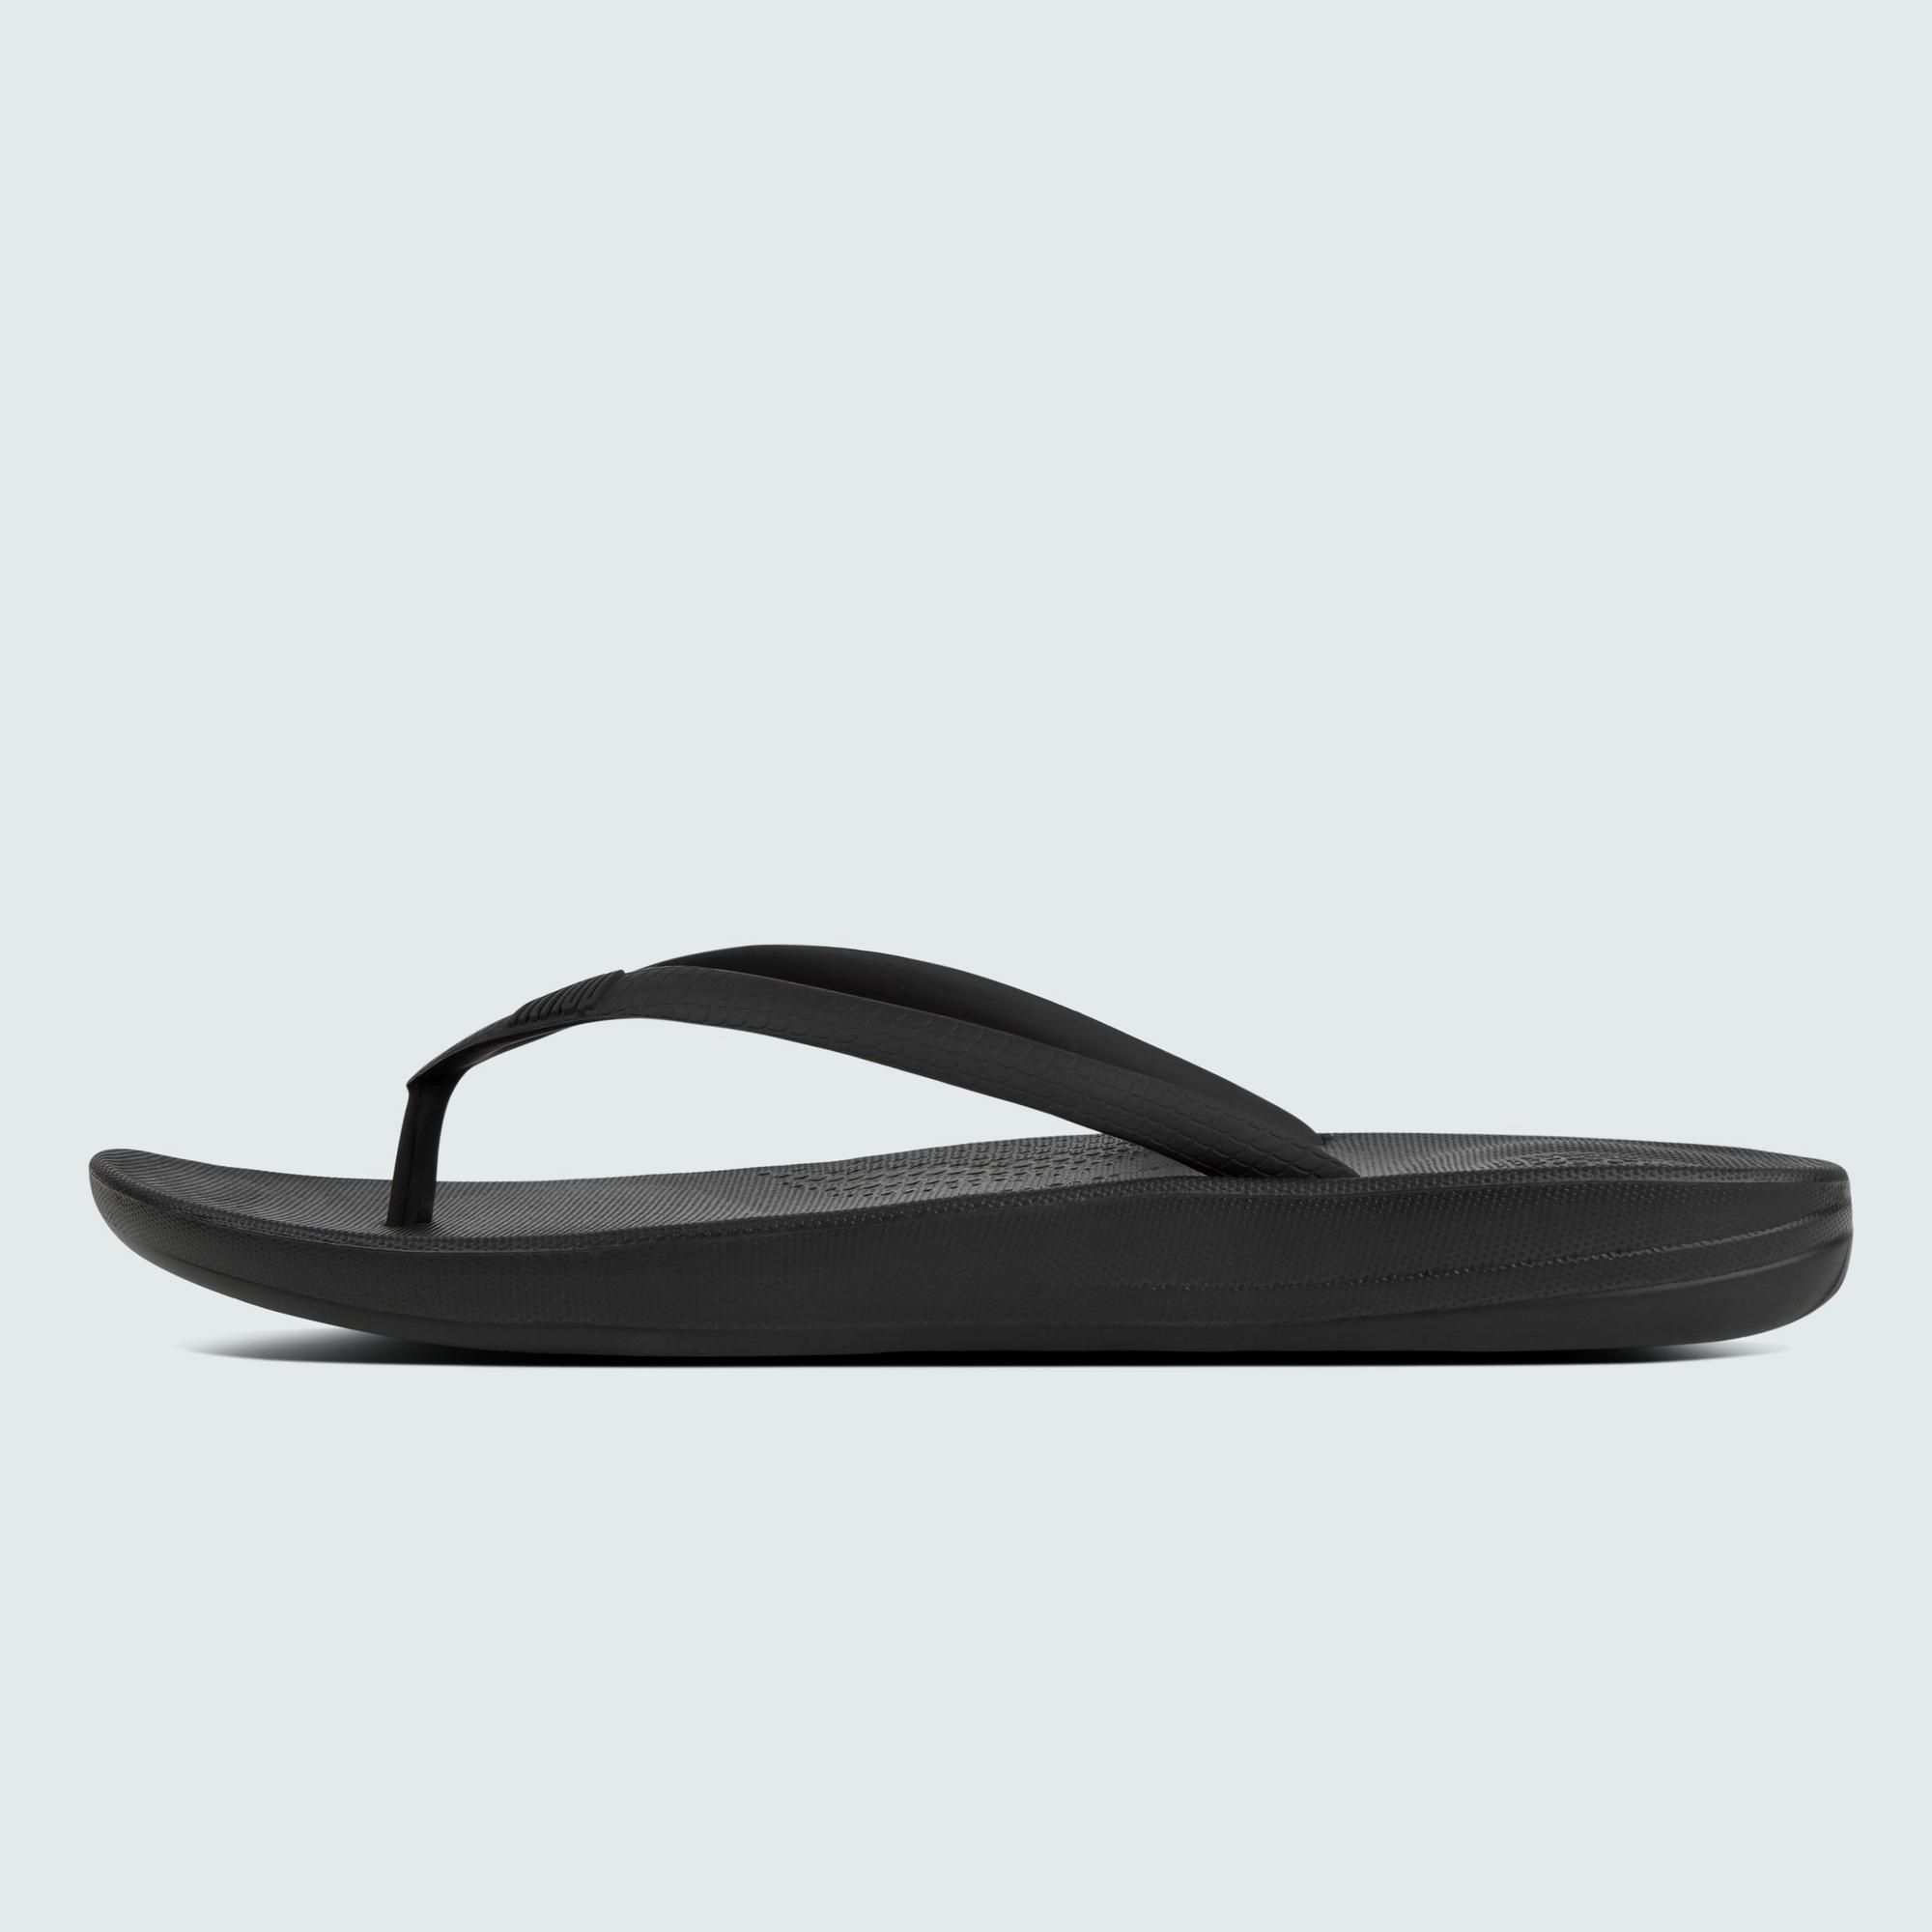 4064e03d0 Fitflop  32. Women s Iqushion Rubber Flip-Flops Black